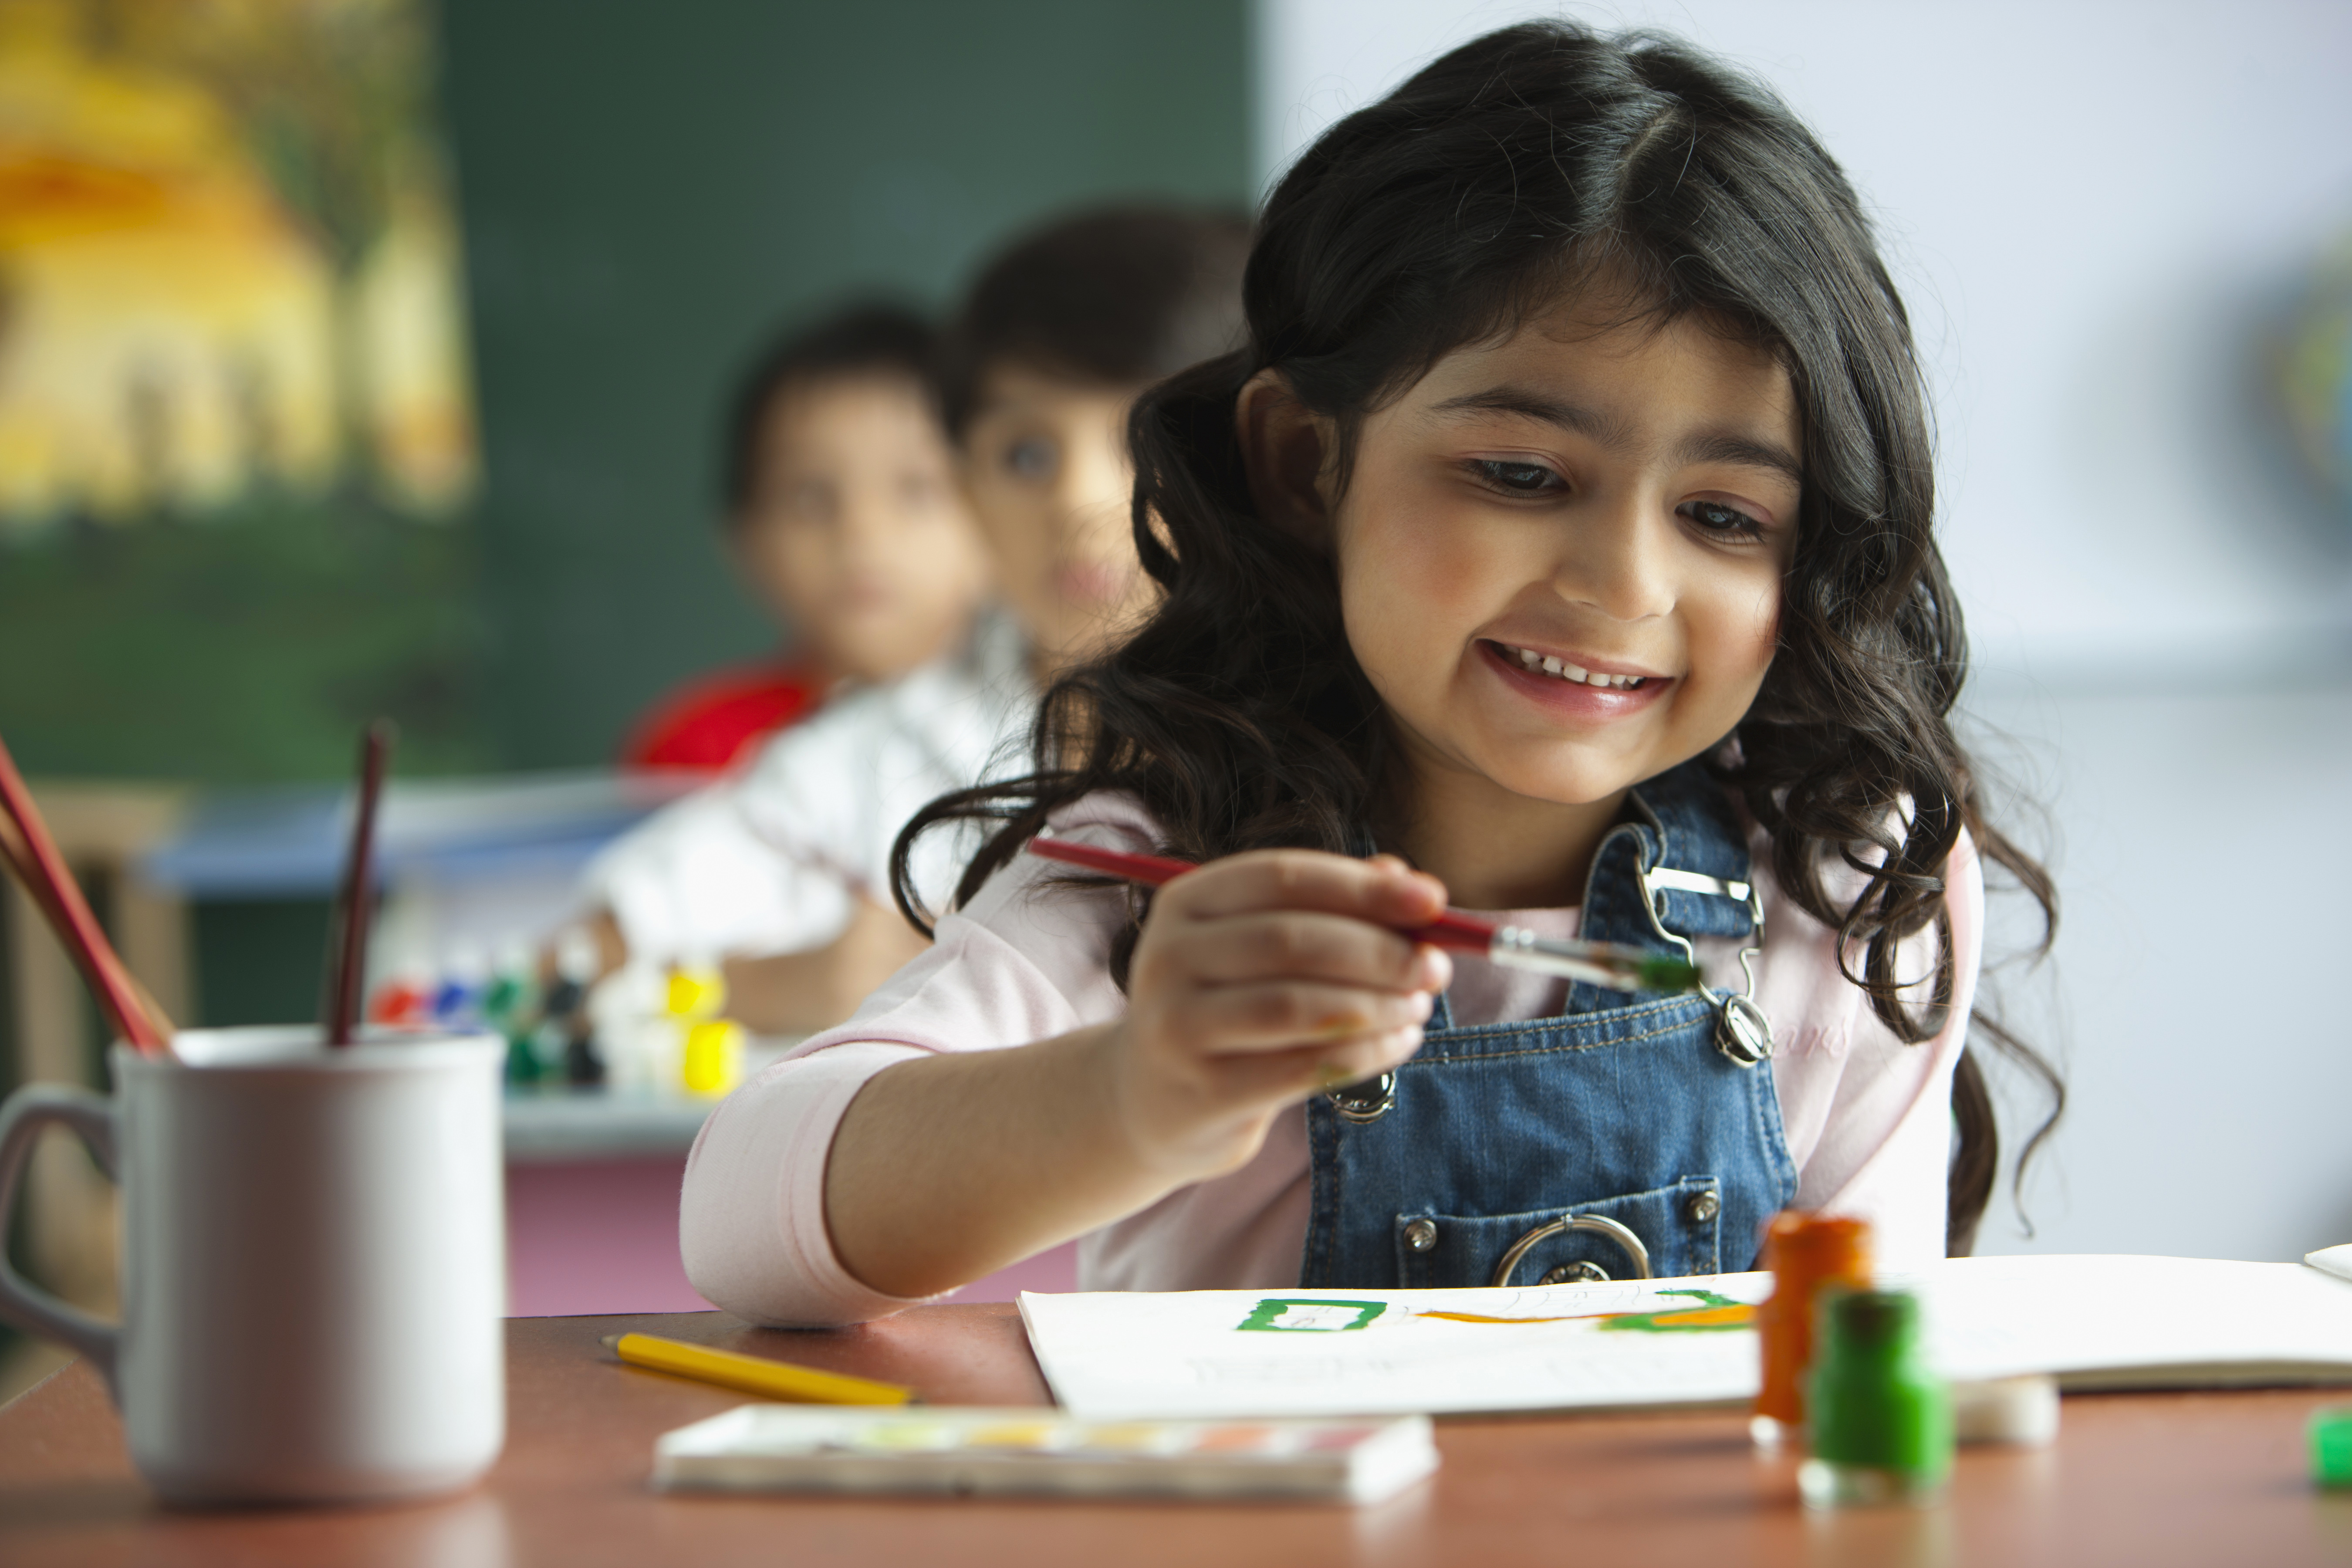 Smiling child with paintbrush in classroom